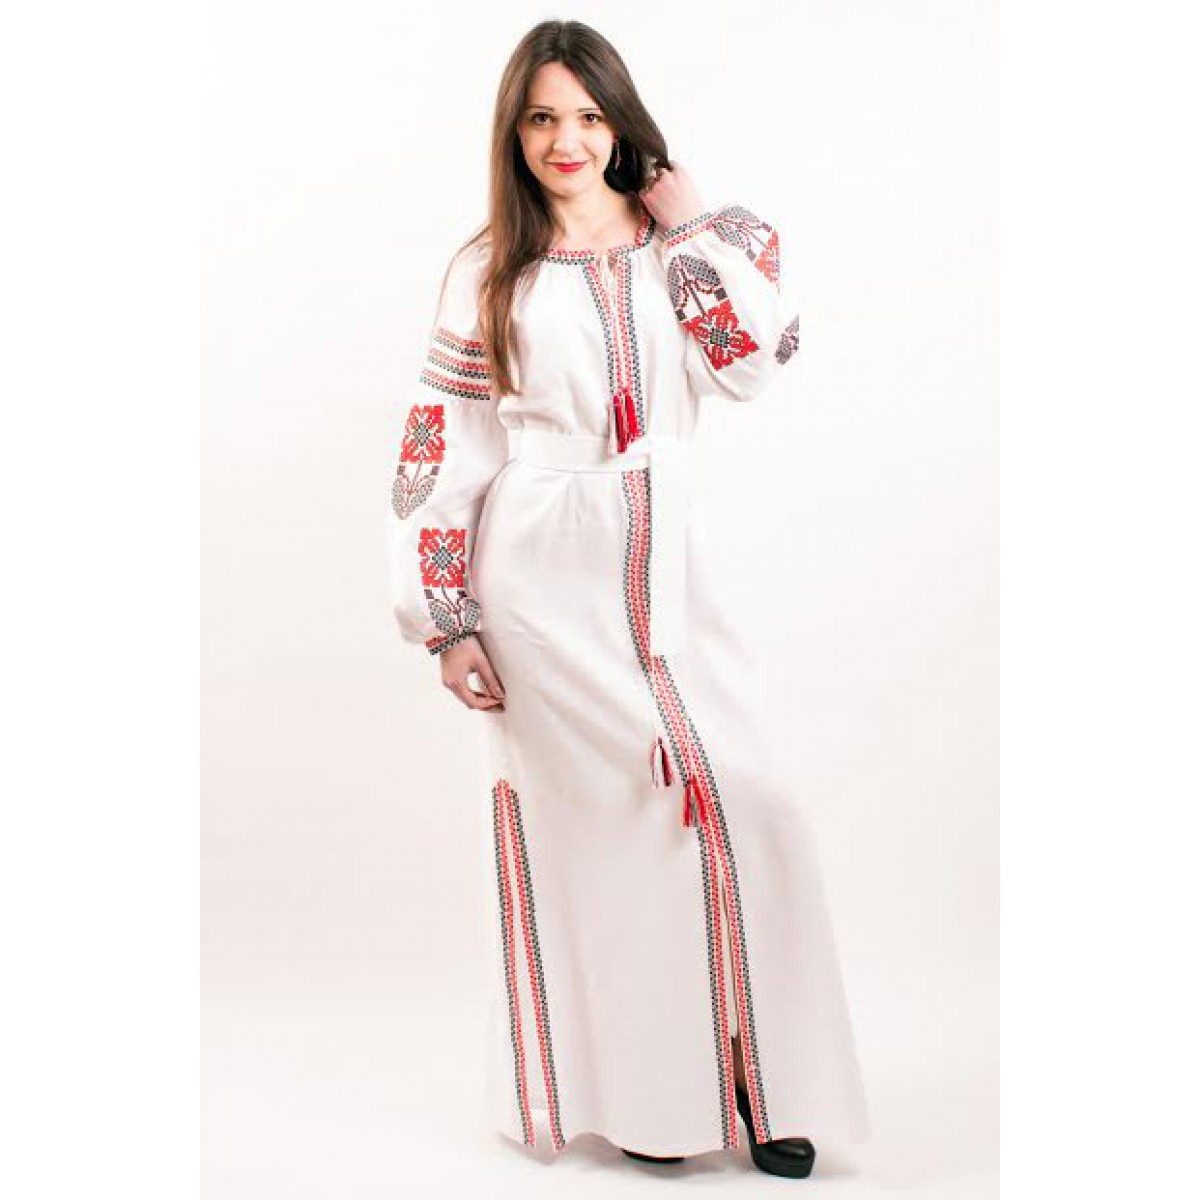 cb08439acc7 Boho Style Ukrainian Embroidered Maxi Broad Dress Red on White